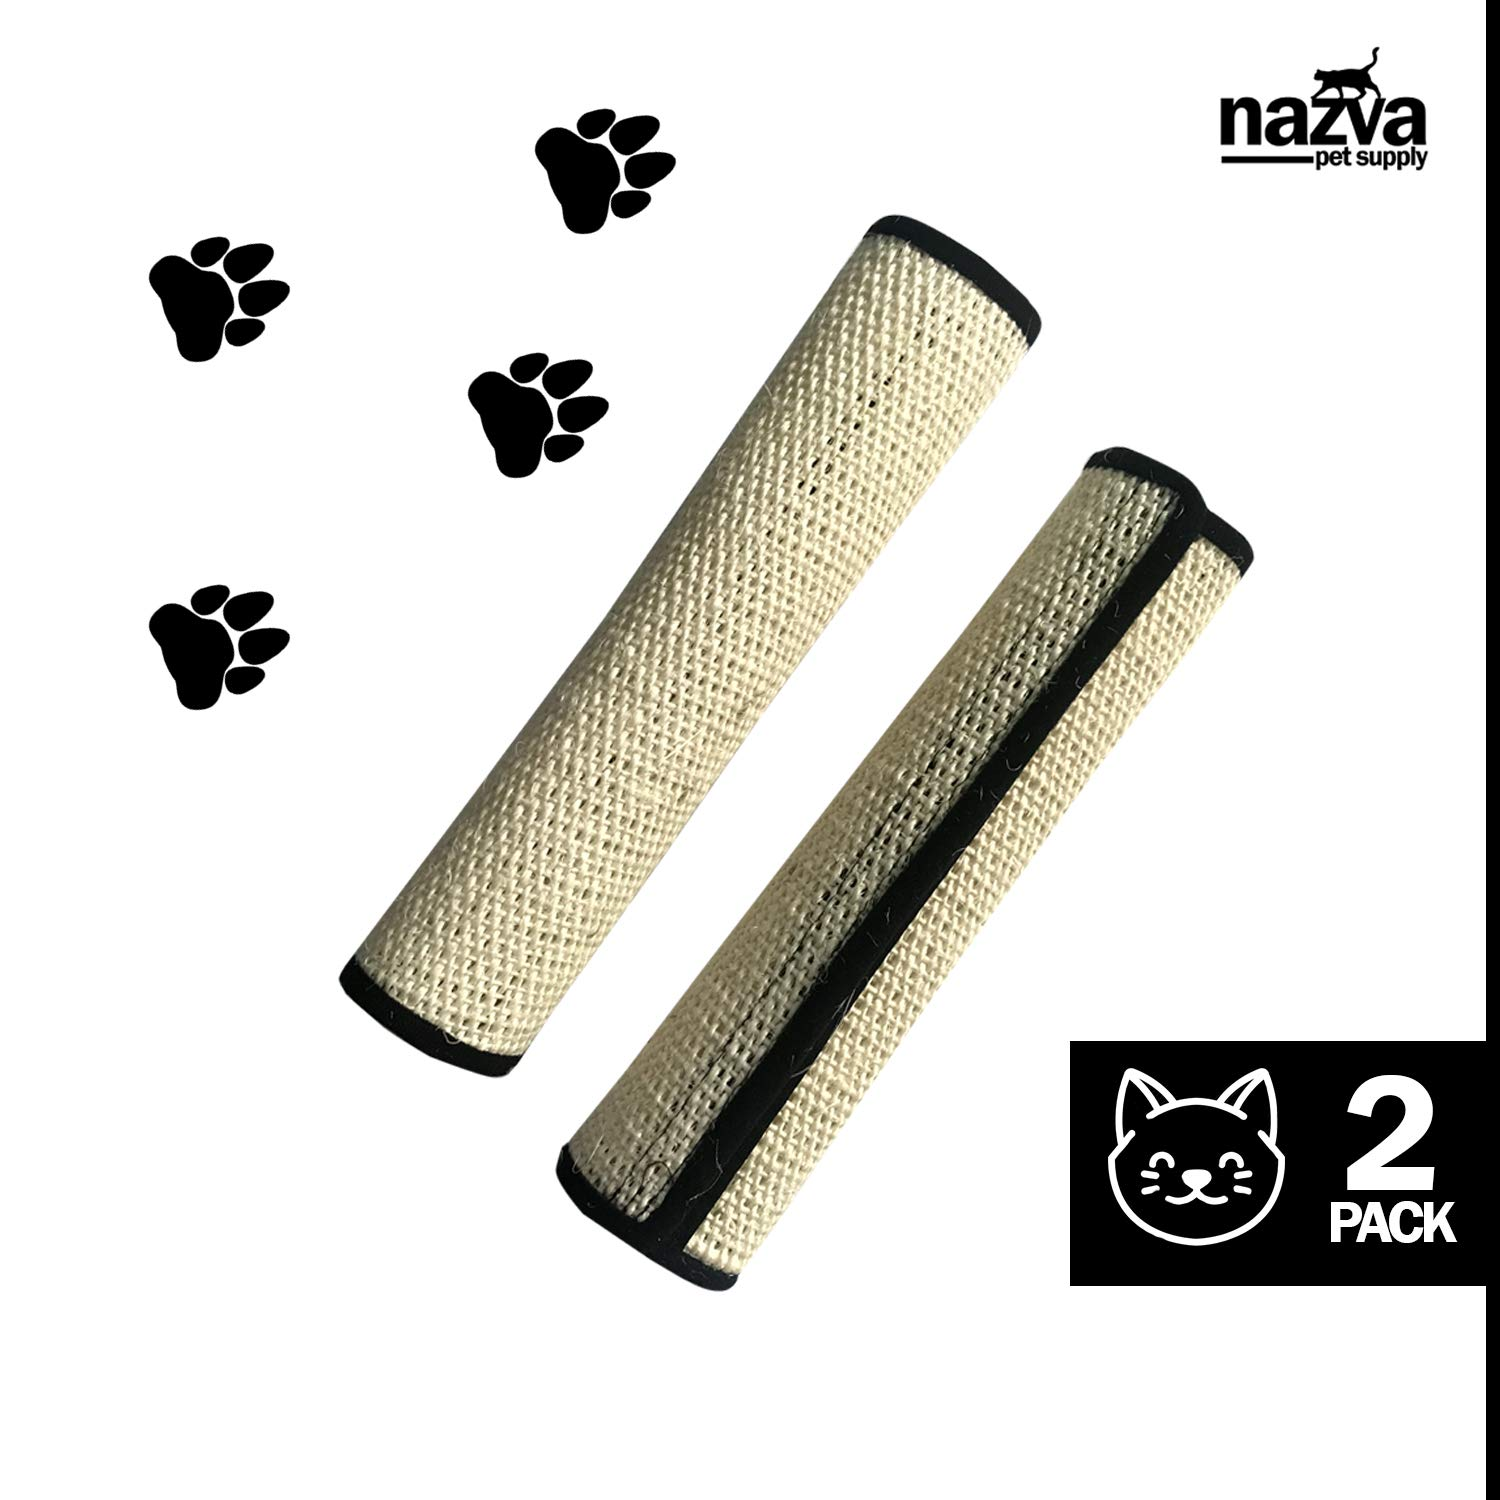 Cat Scratching Mat with Velcro - 2 Pack - Cat Furniture Protection Warping Around Sofa, Table, Chair, Couch